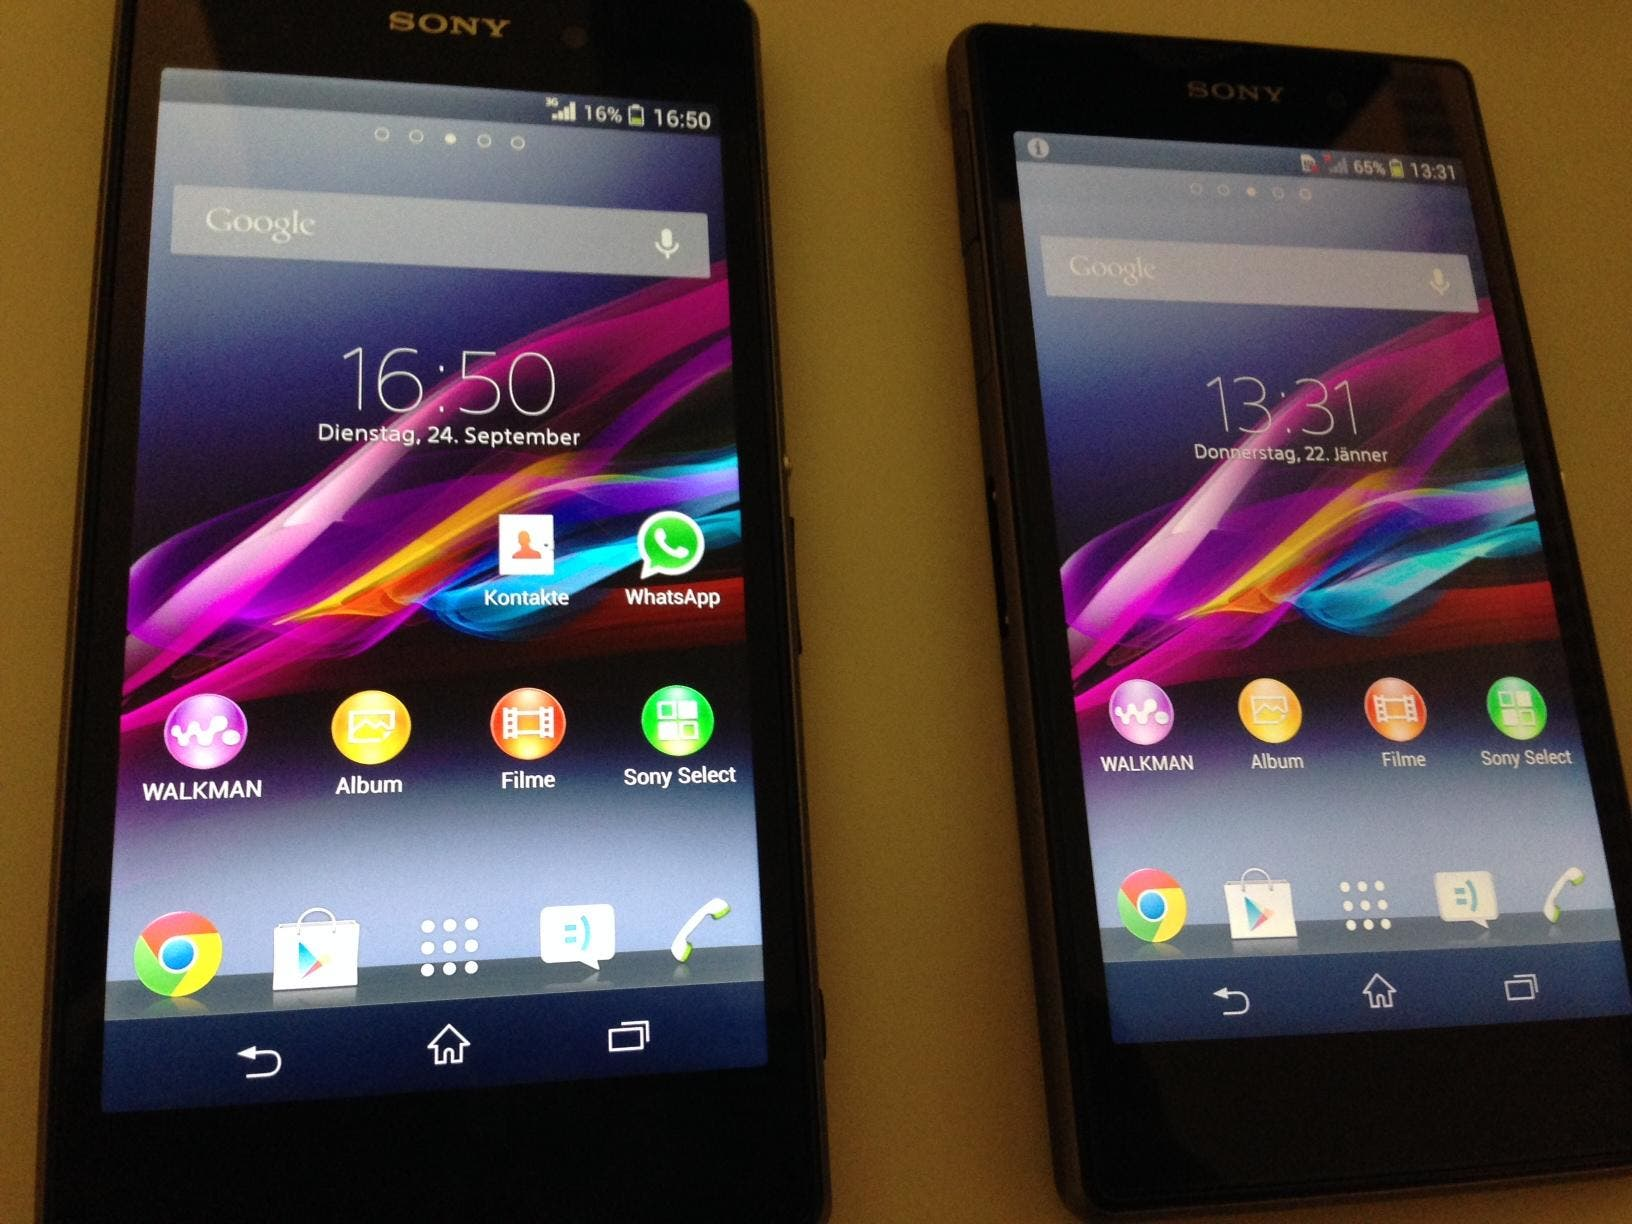 Display-Lotterie beim Sony Xperia Z1?